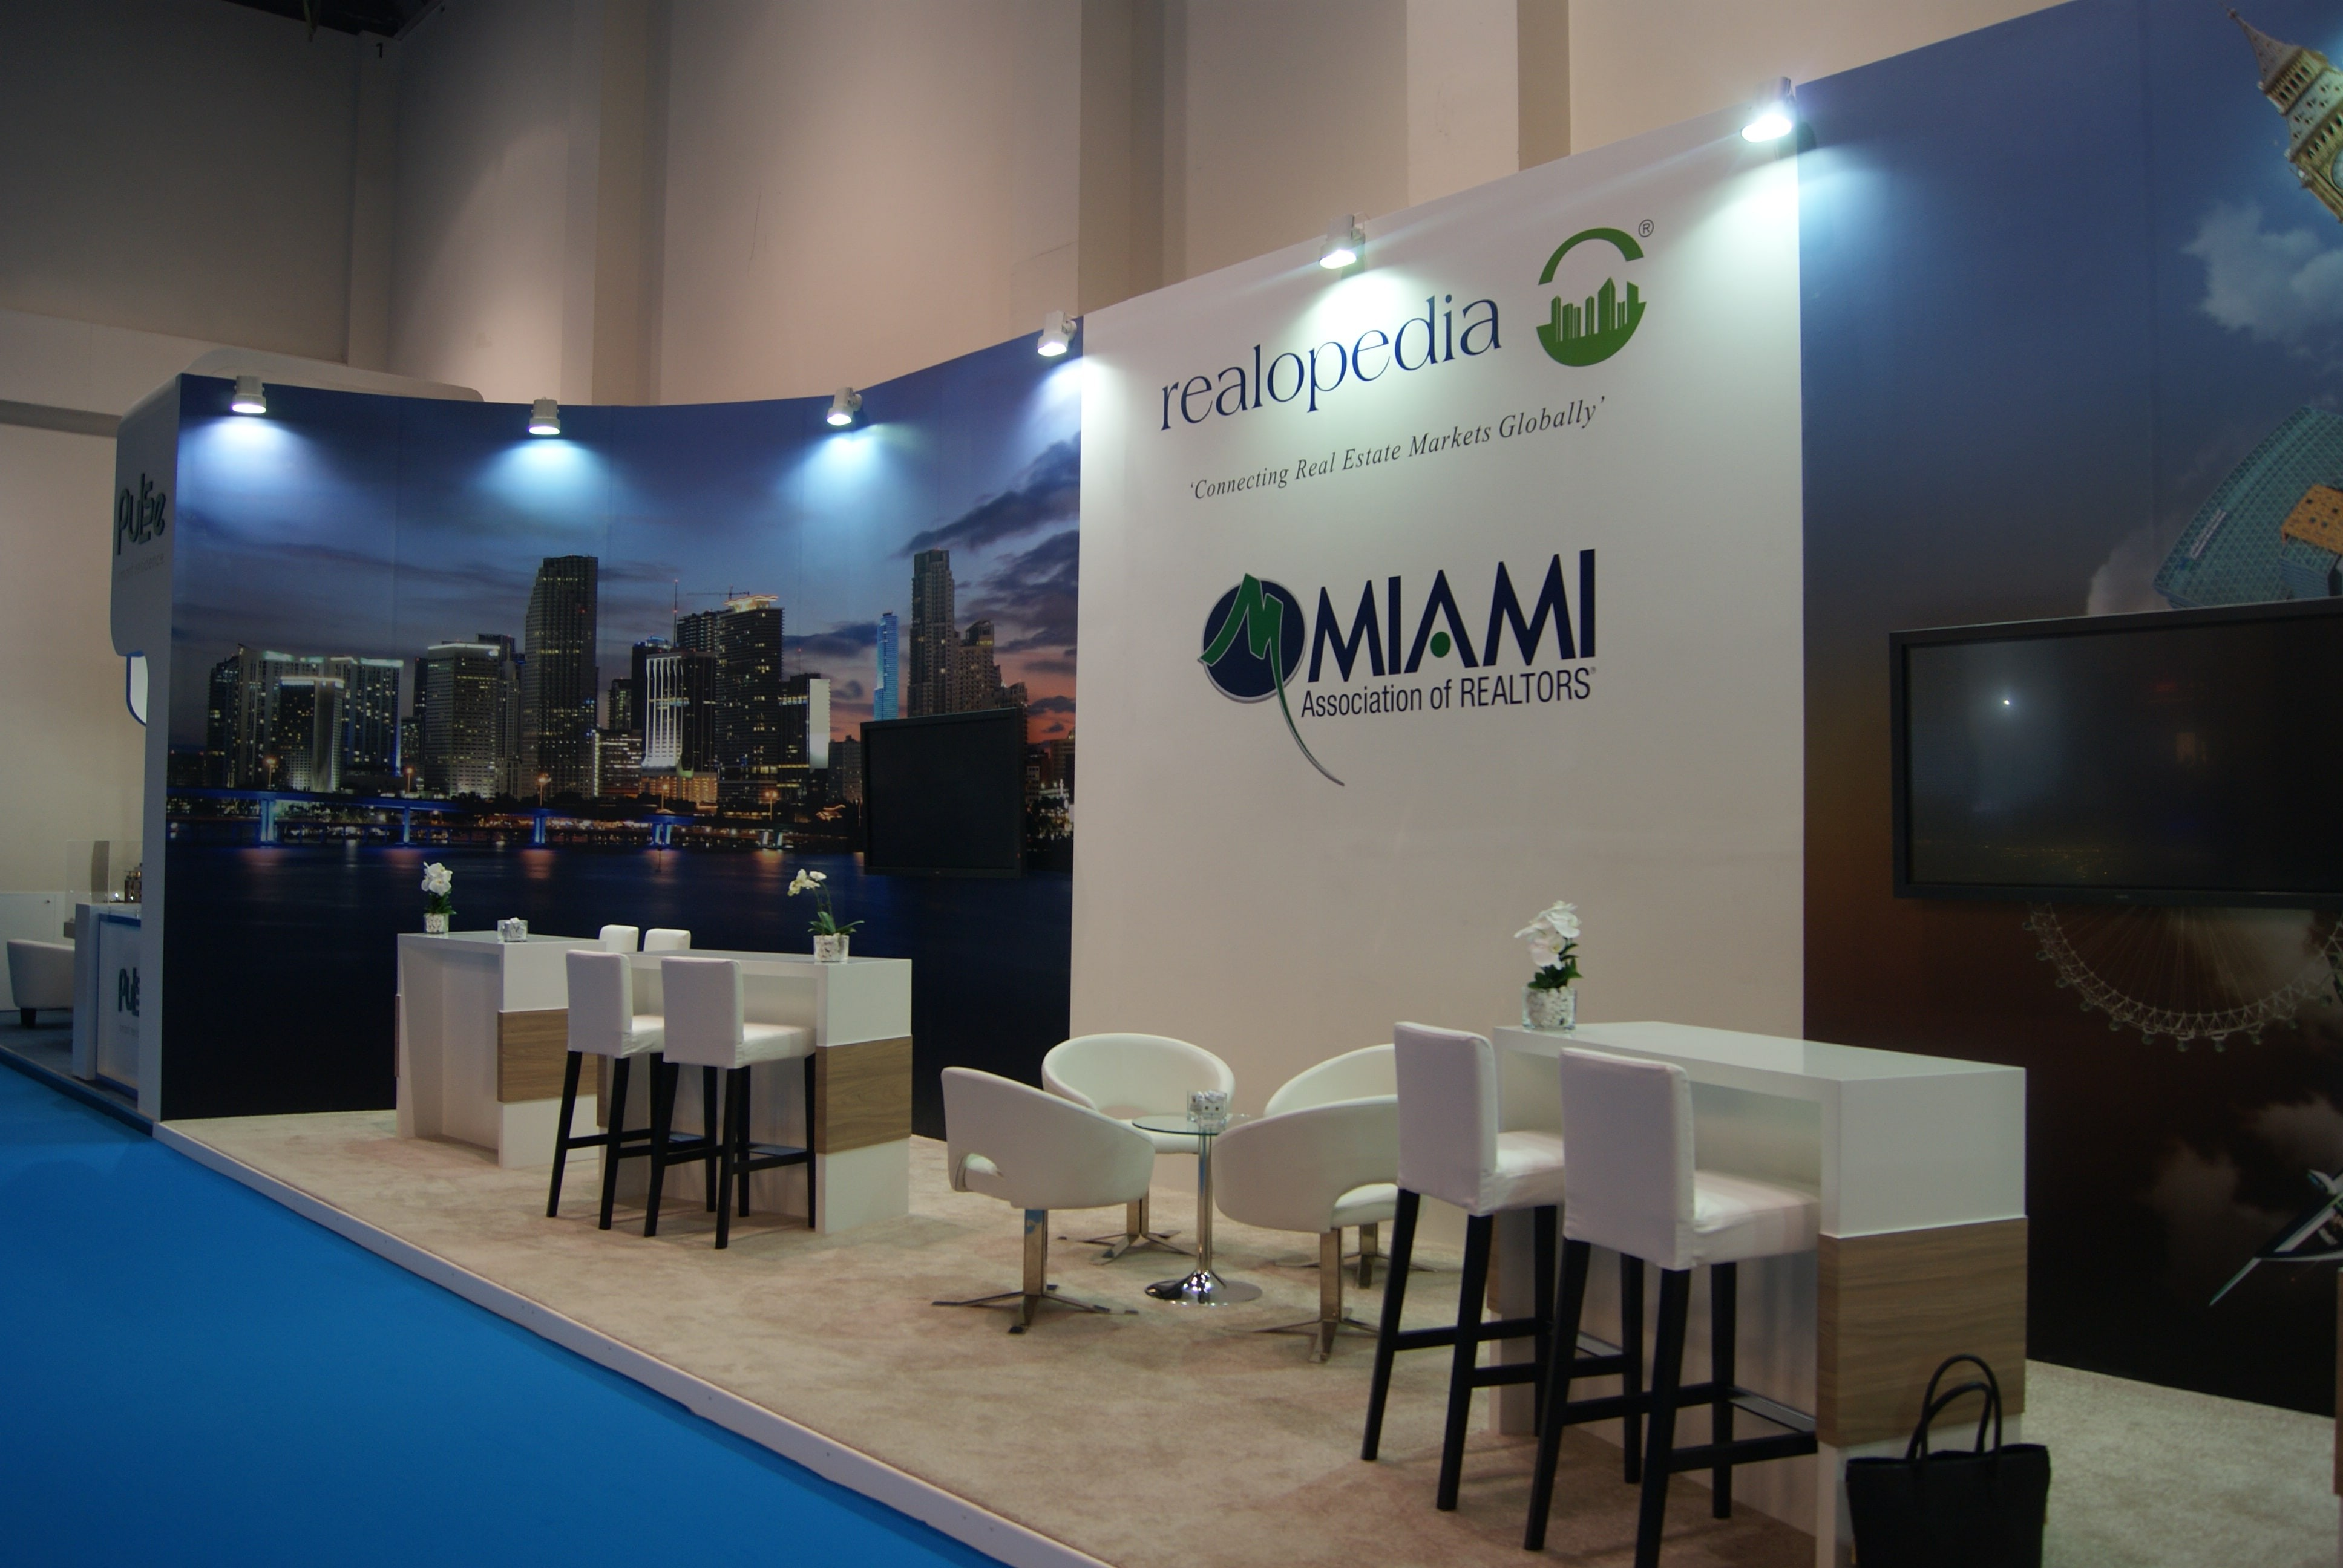 Real Estate Press and Media, Cityscape Global 2016 - Dubai